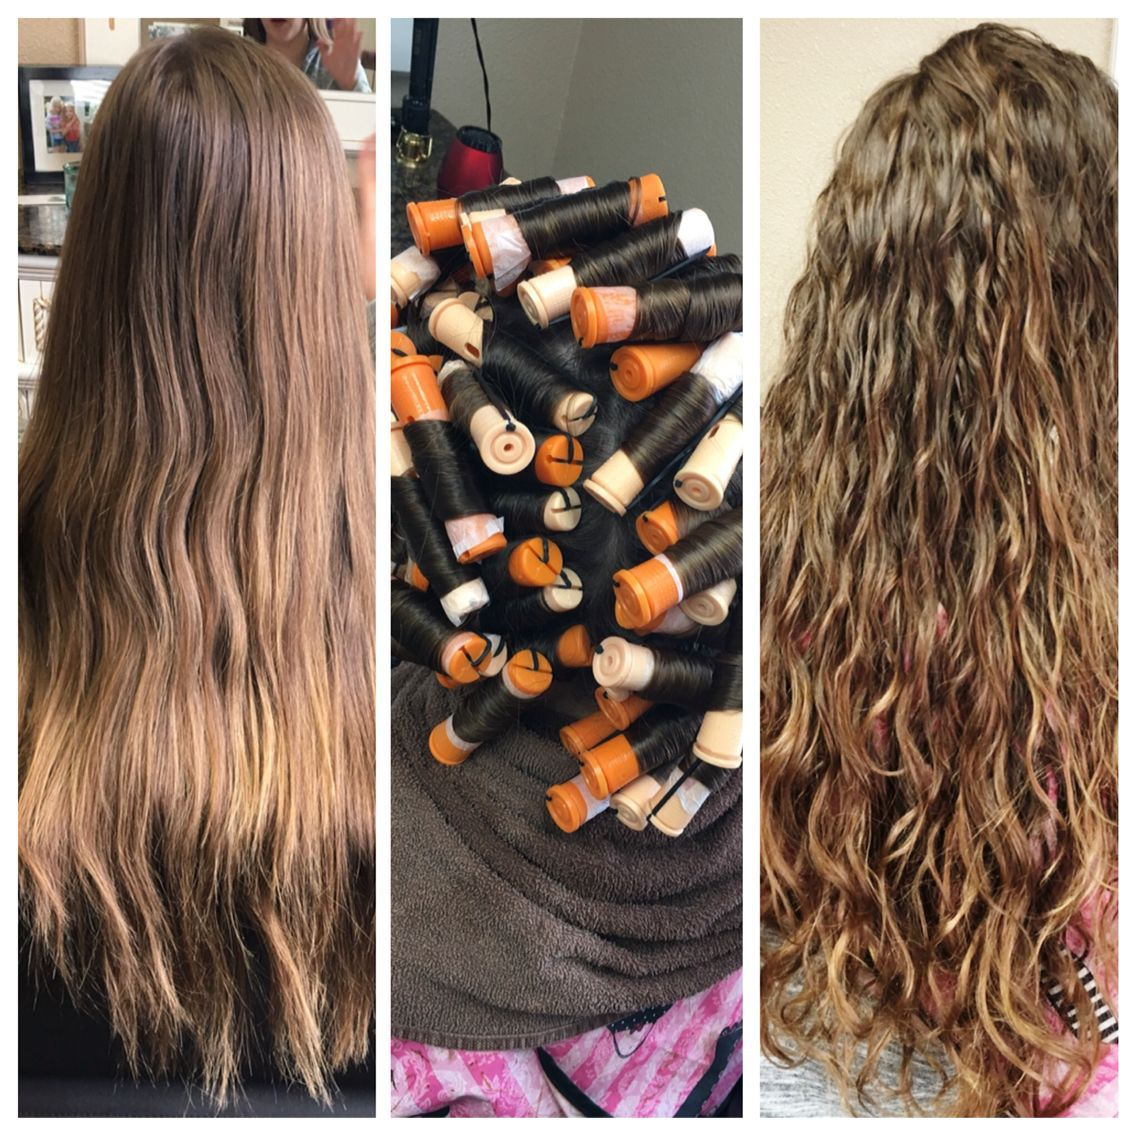 Before my perm during and after (me) | Hair styles